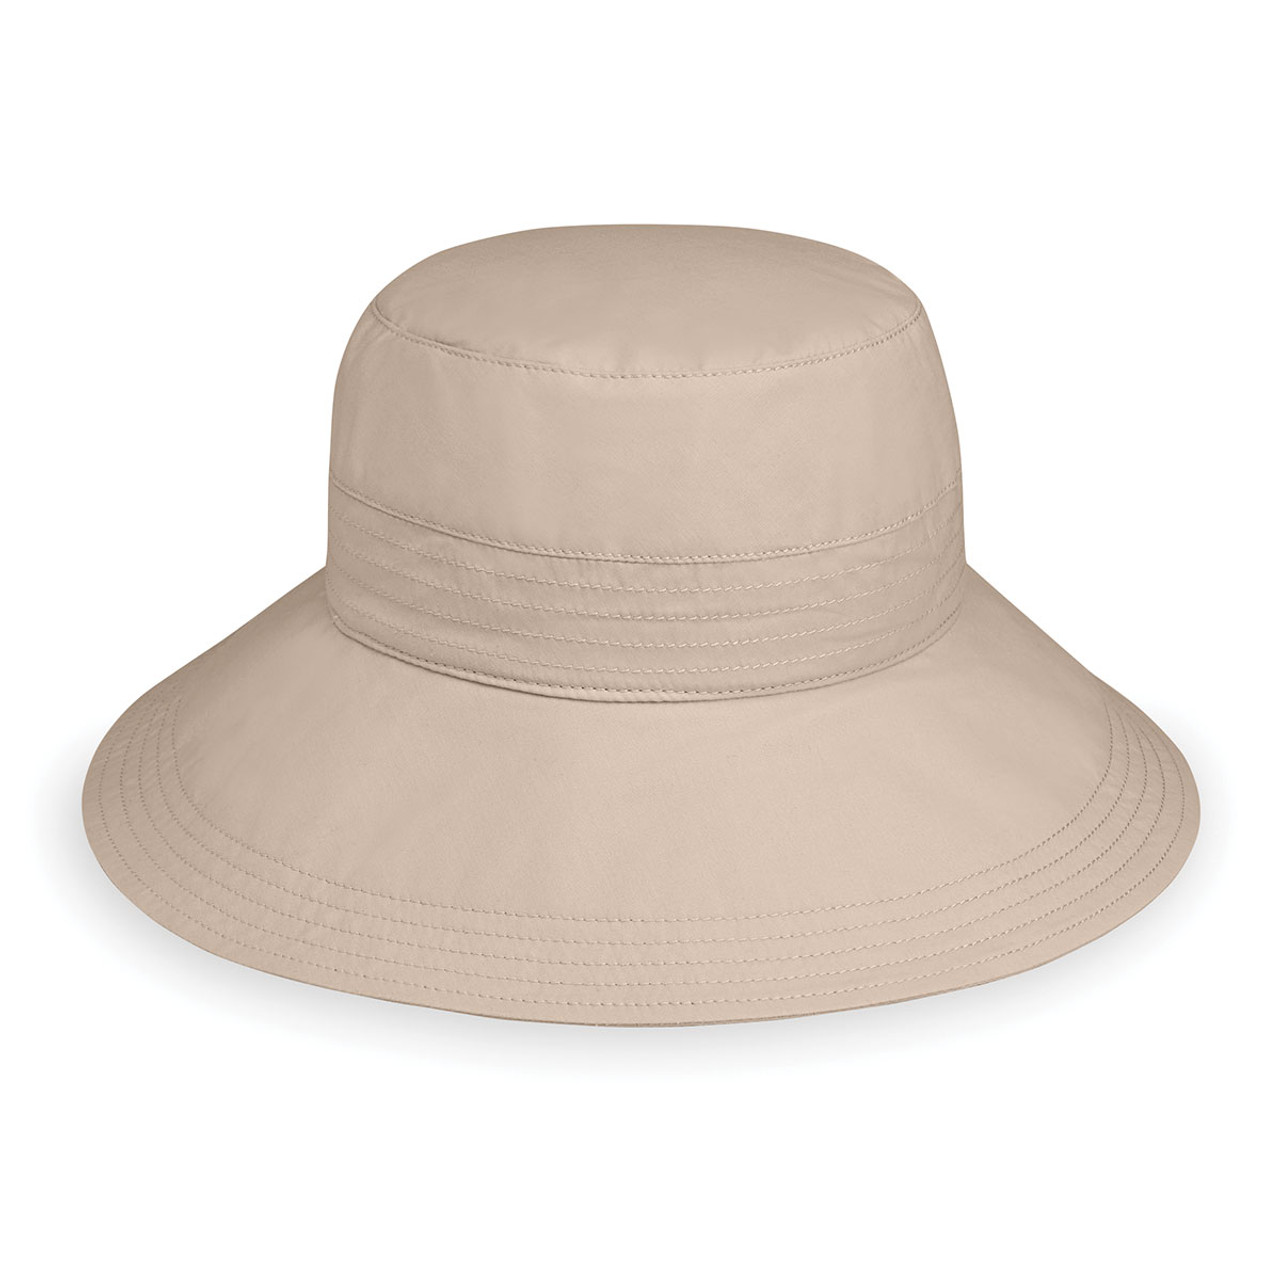 99801488e0a Womens Wallaroo Piper sun hat UPF50+ beige